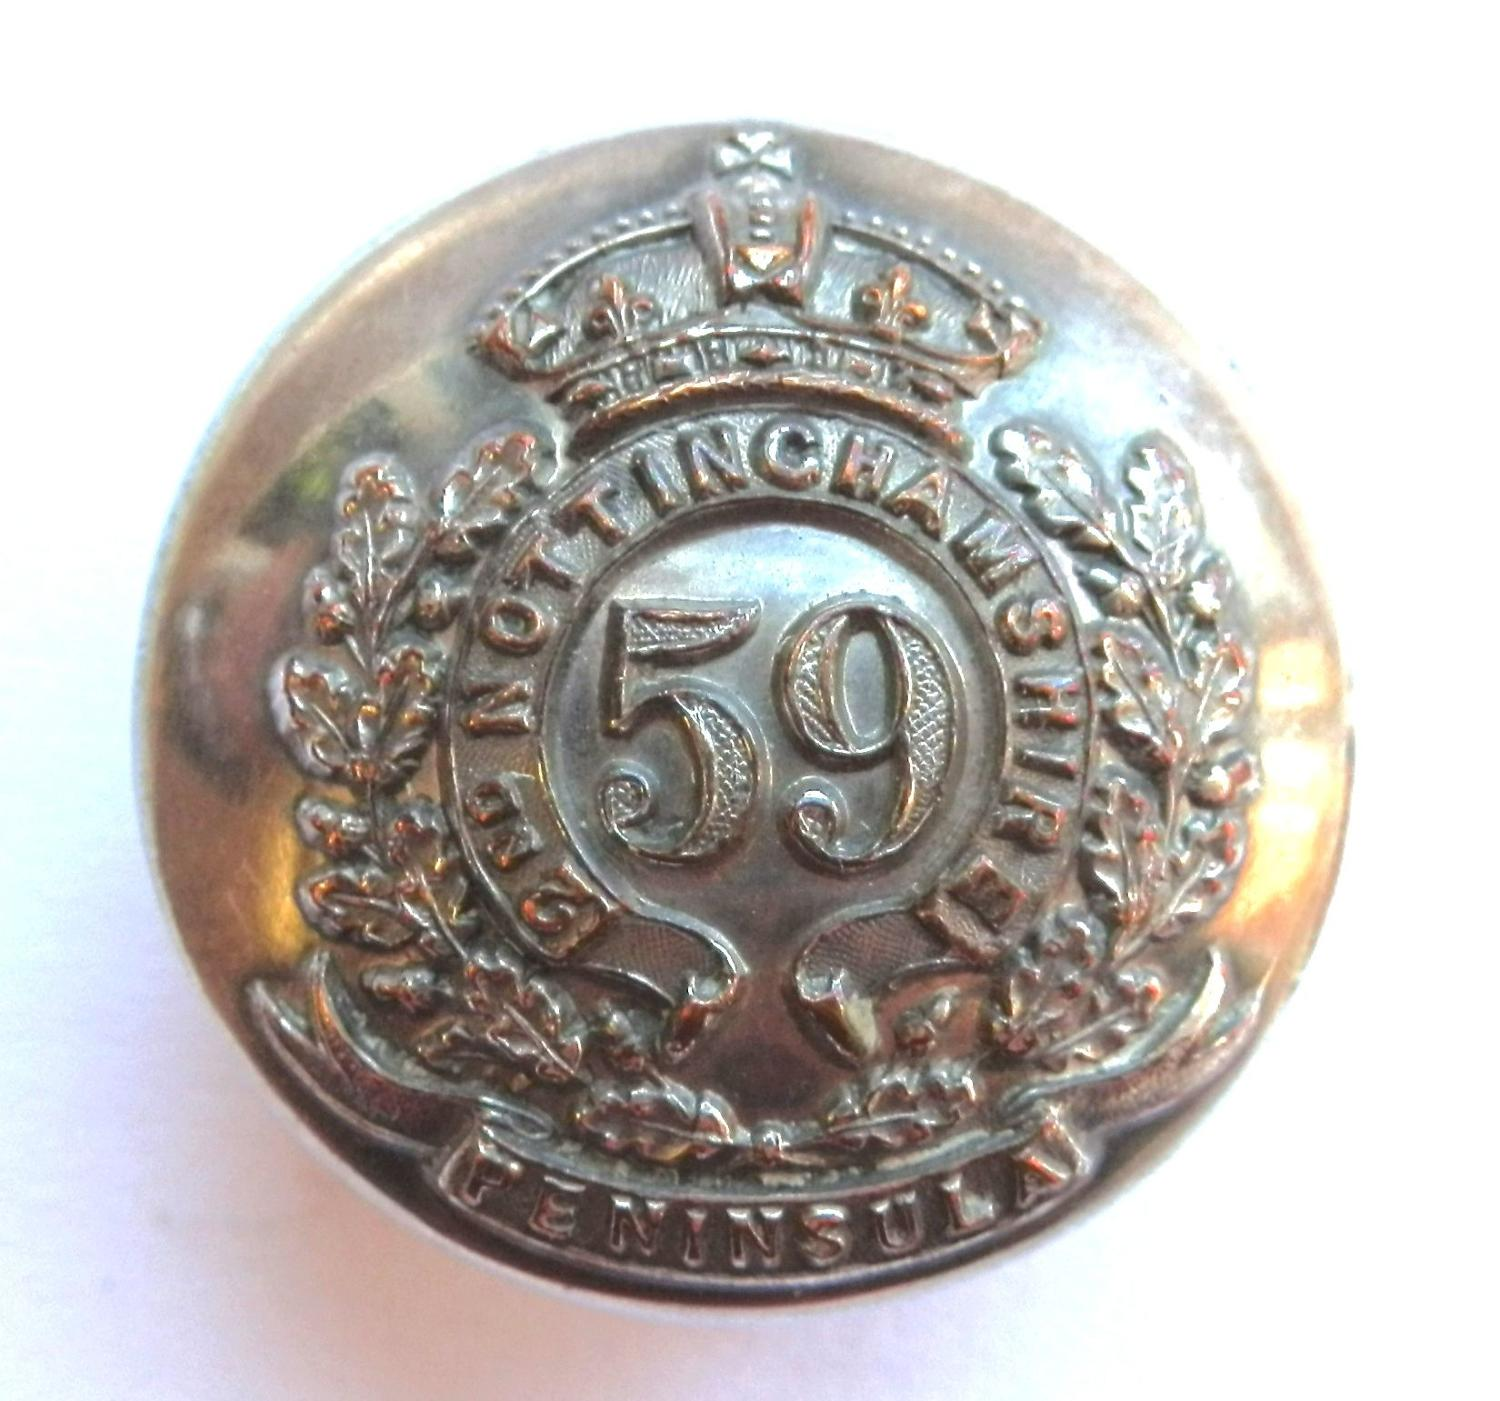 59th (2nd Notts.) Regiment Circa 1755-1881. Button